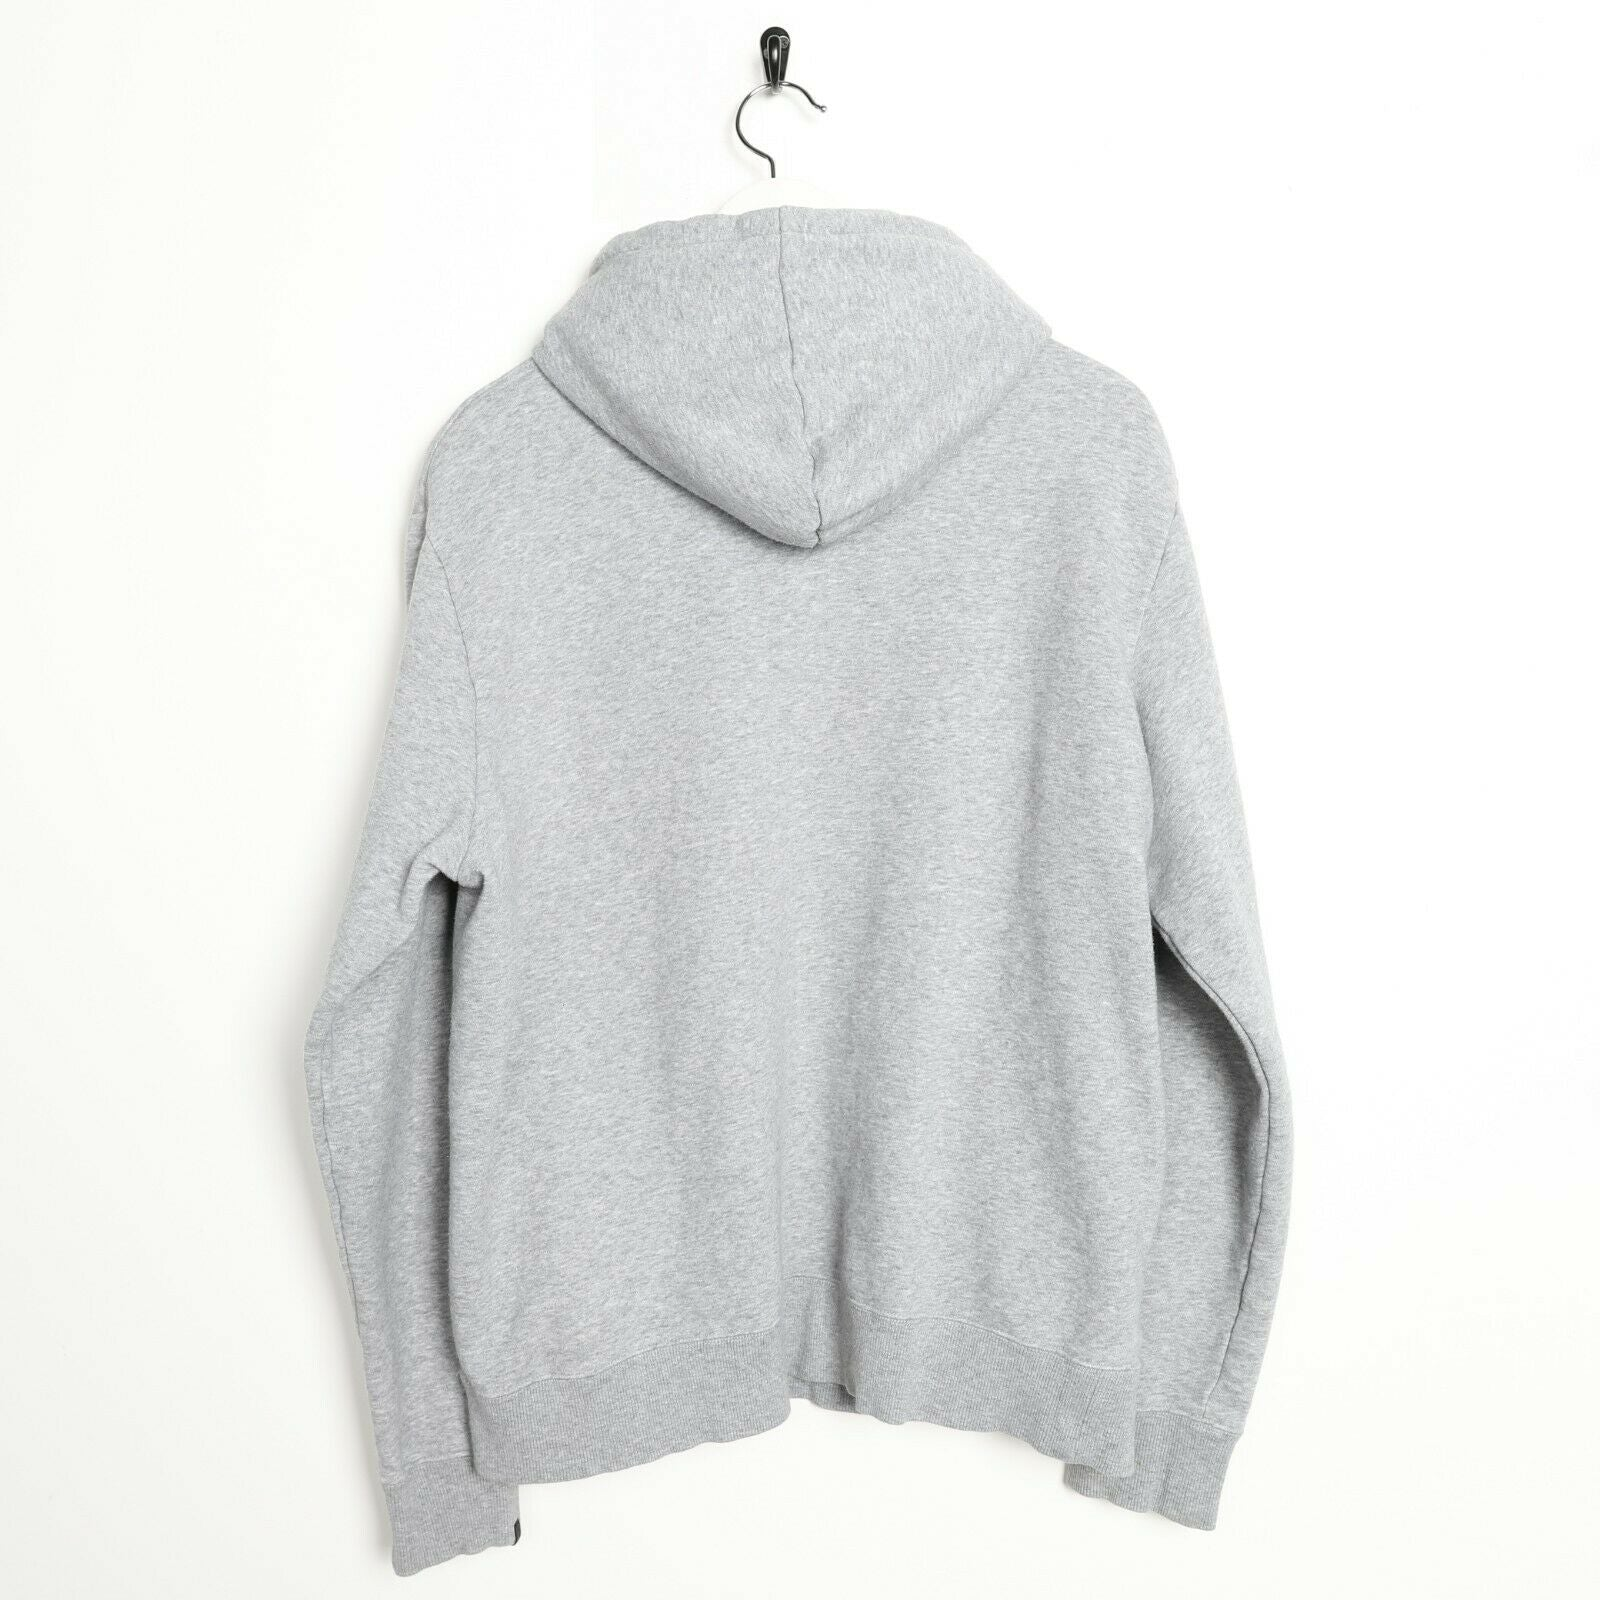 Vintage NIKE Spell Out Hoodie Sweatshirt Grey Large L